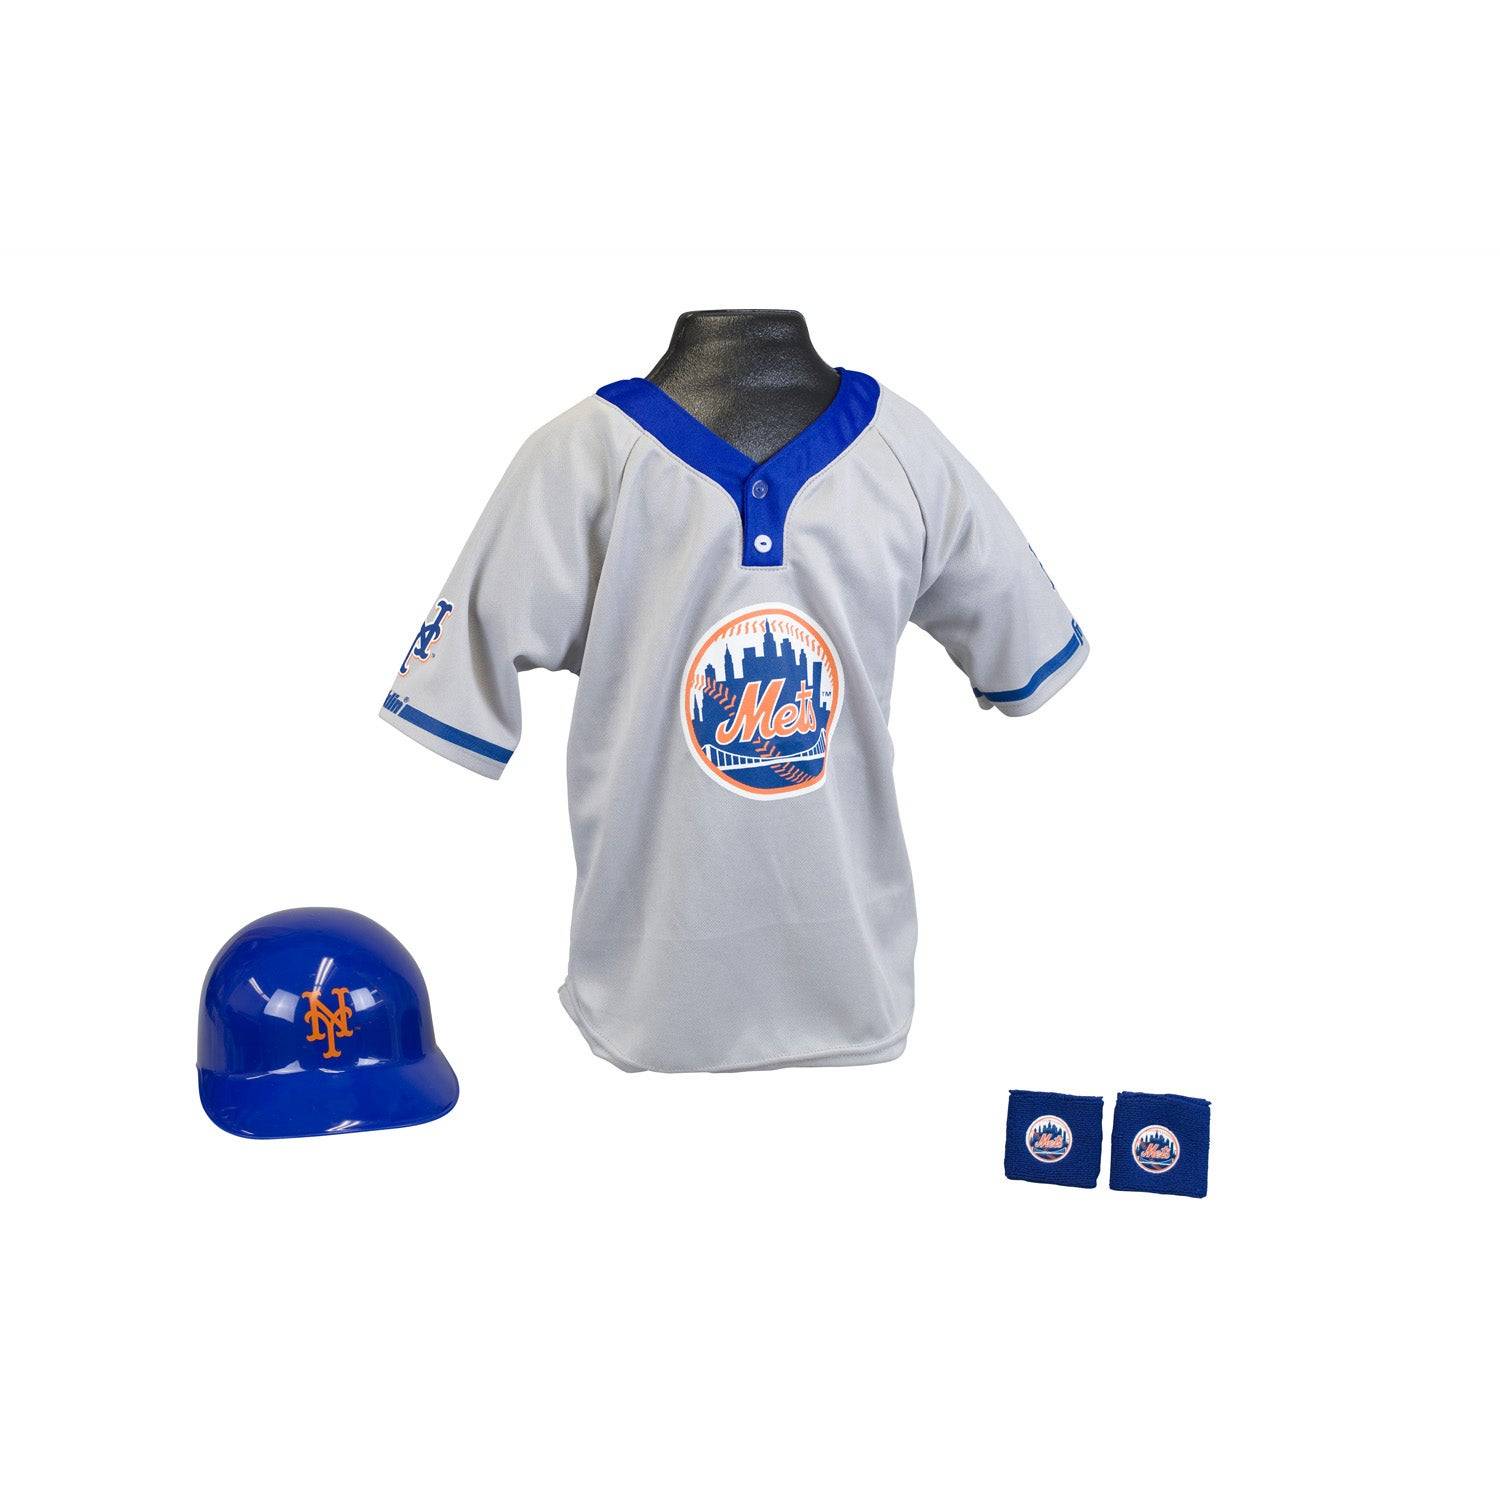 Franklin Sports Kids MLB New York Mets Team Uniform Set